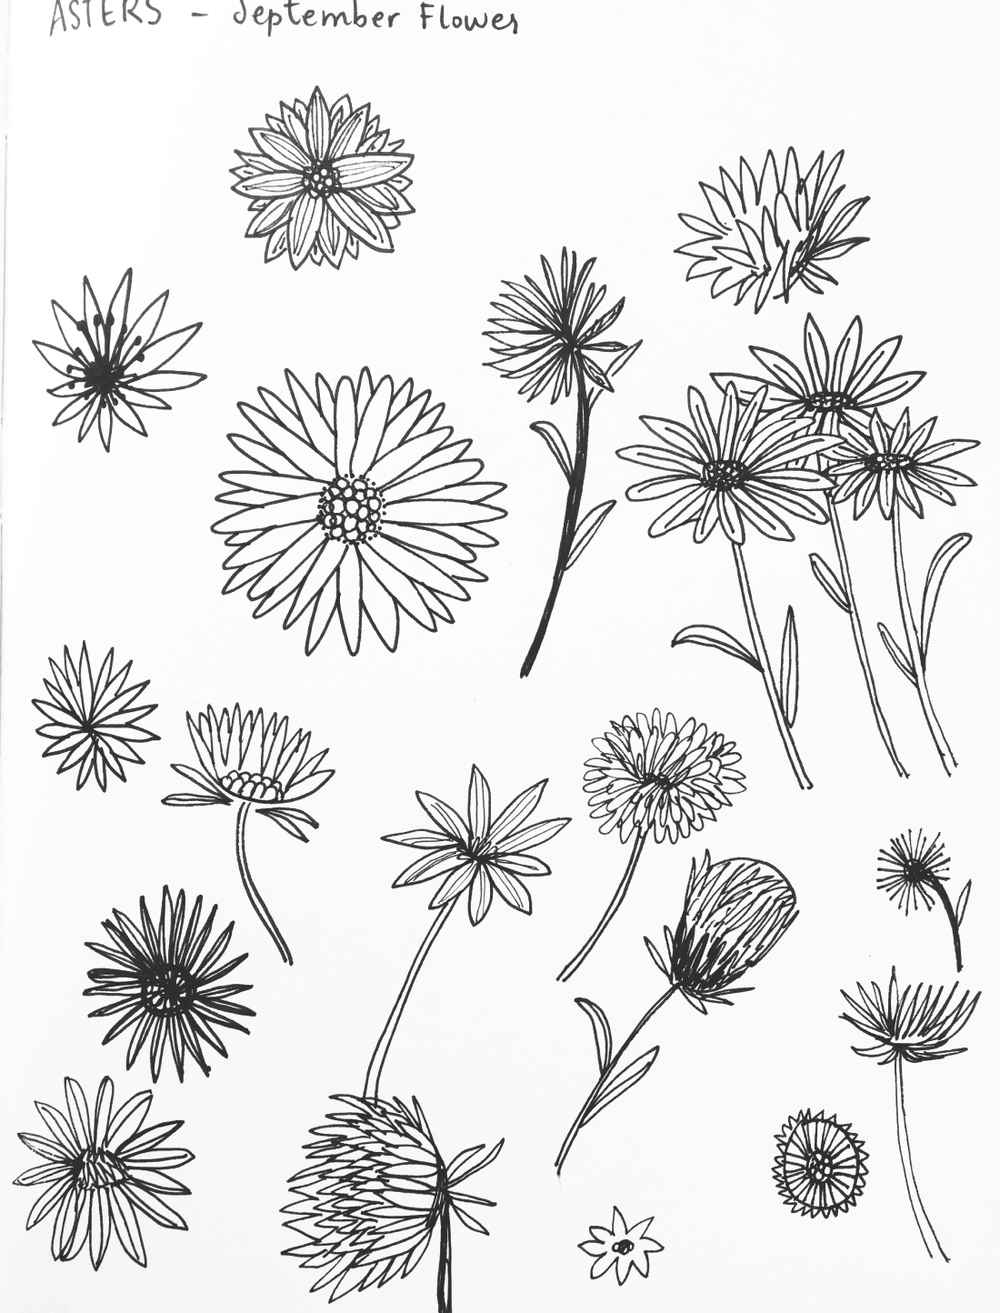 Aster Flower Sketches by Amanda Gomes • DelightedCo.com